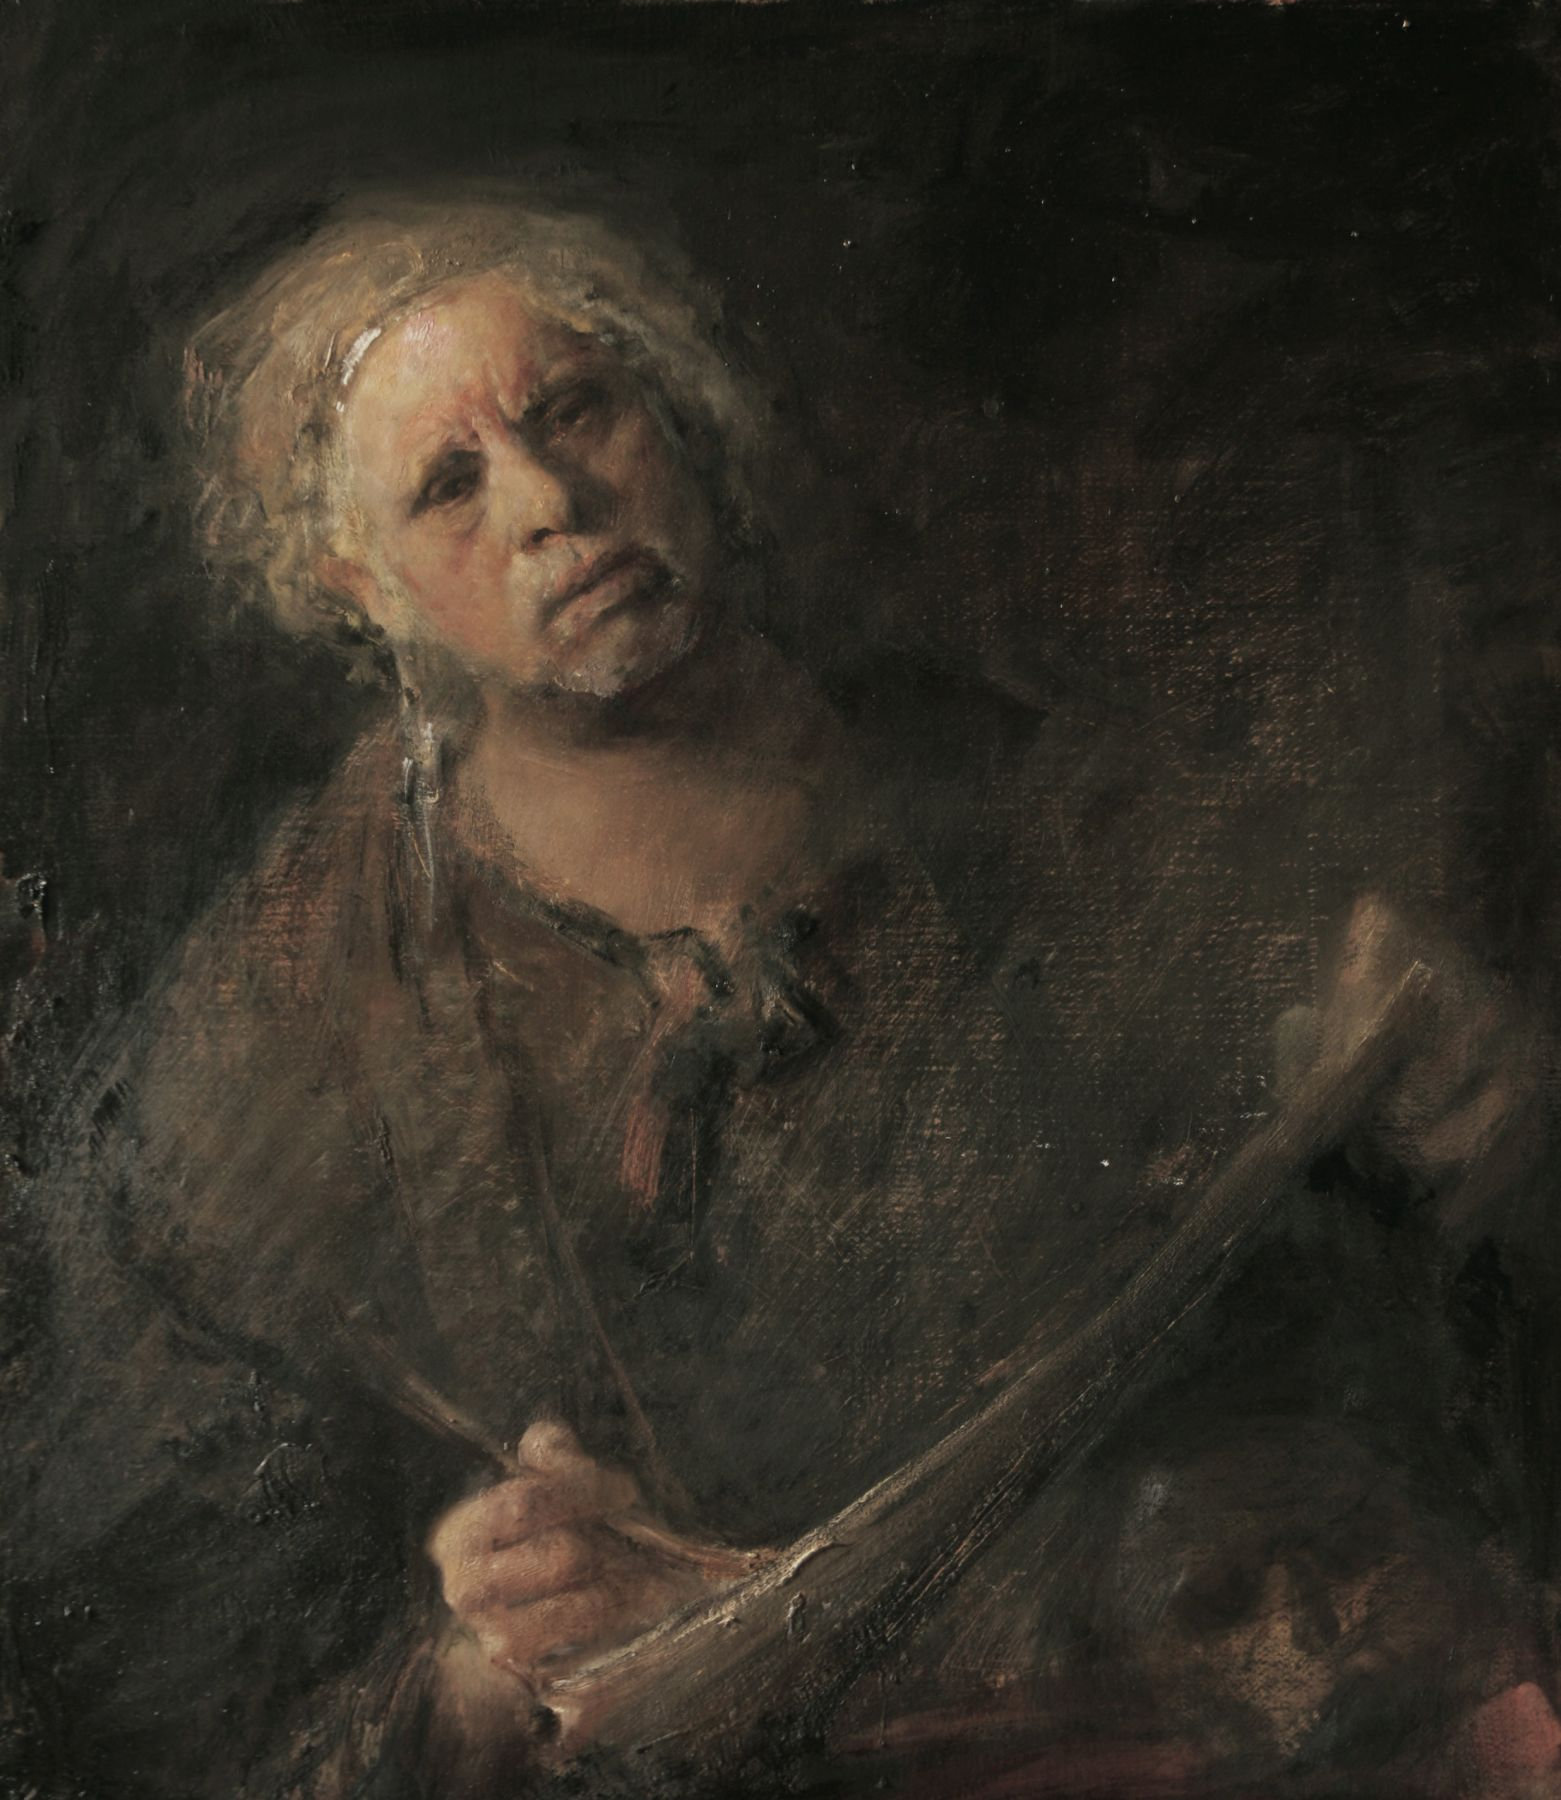 odd nerdrum, Self Portrait with Child's Skull, oil on canvas, 34 1/2 x 30 inches